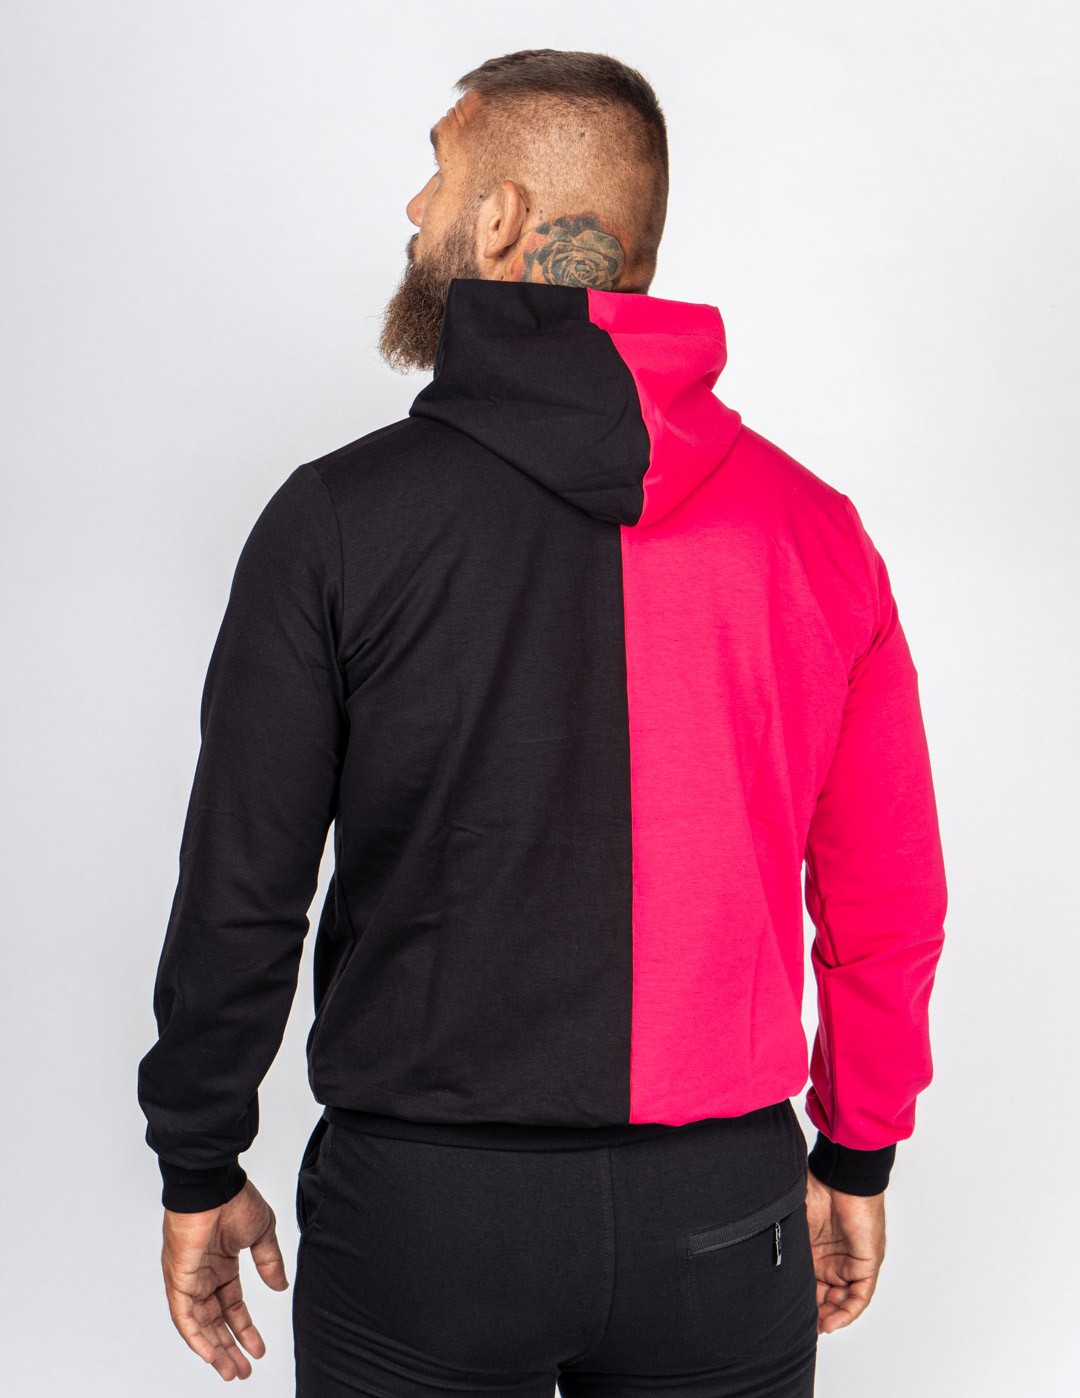 Hoodie Neon Street Collection Black/Pink